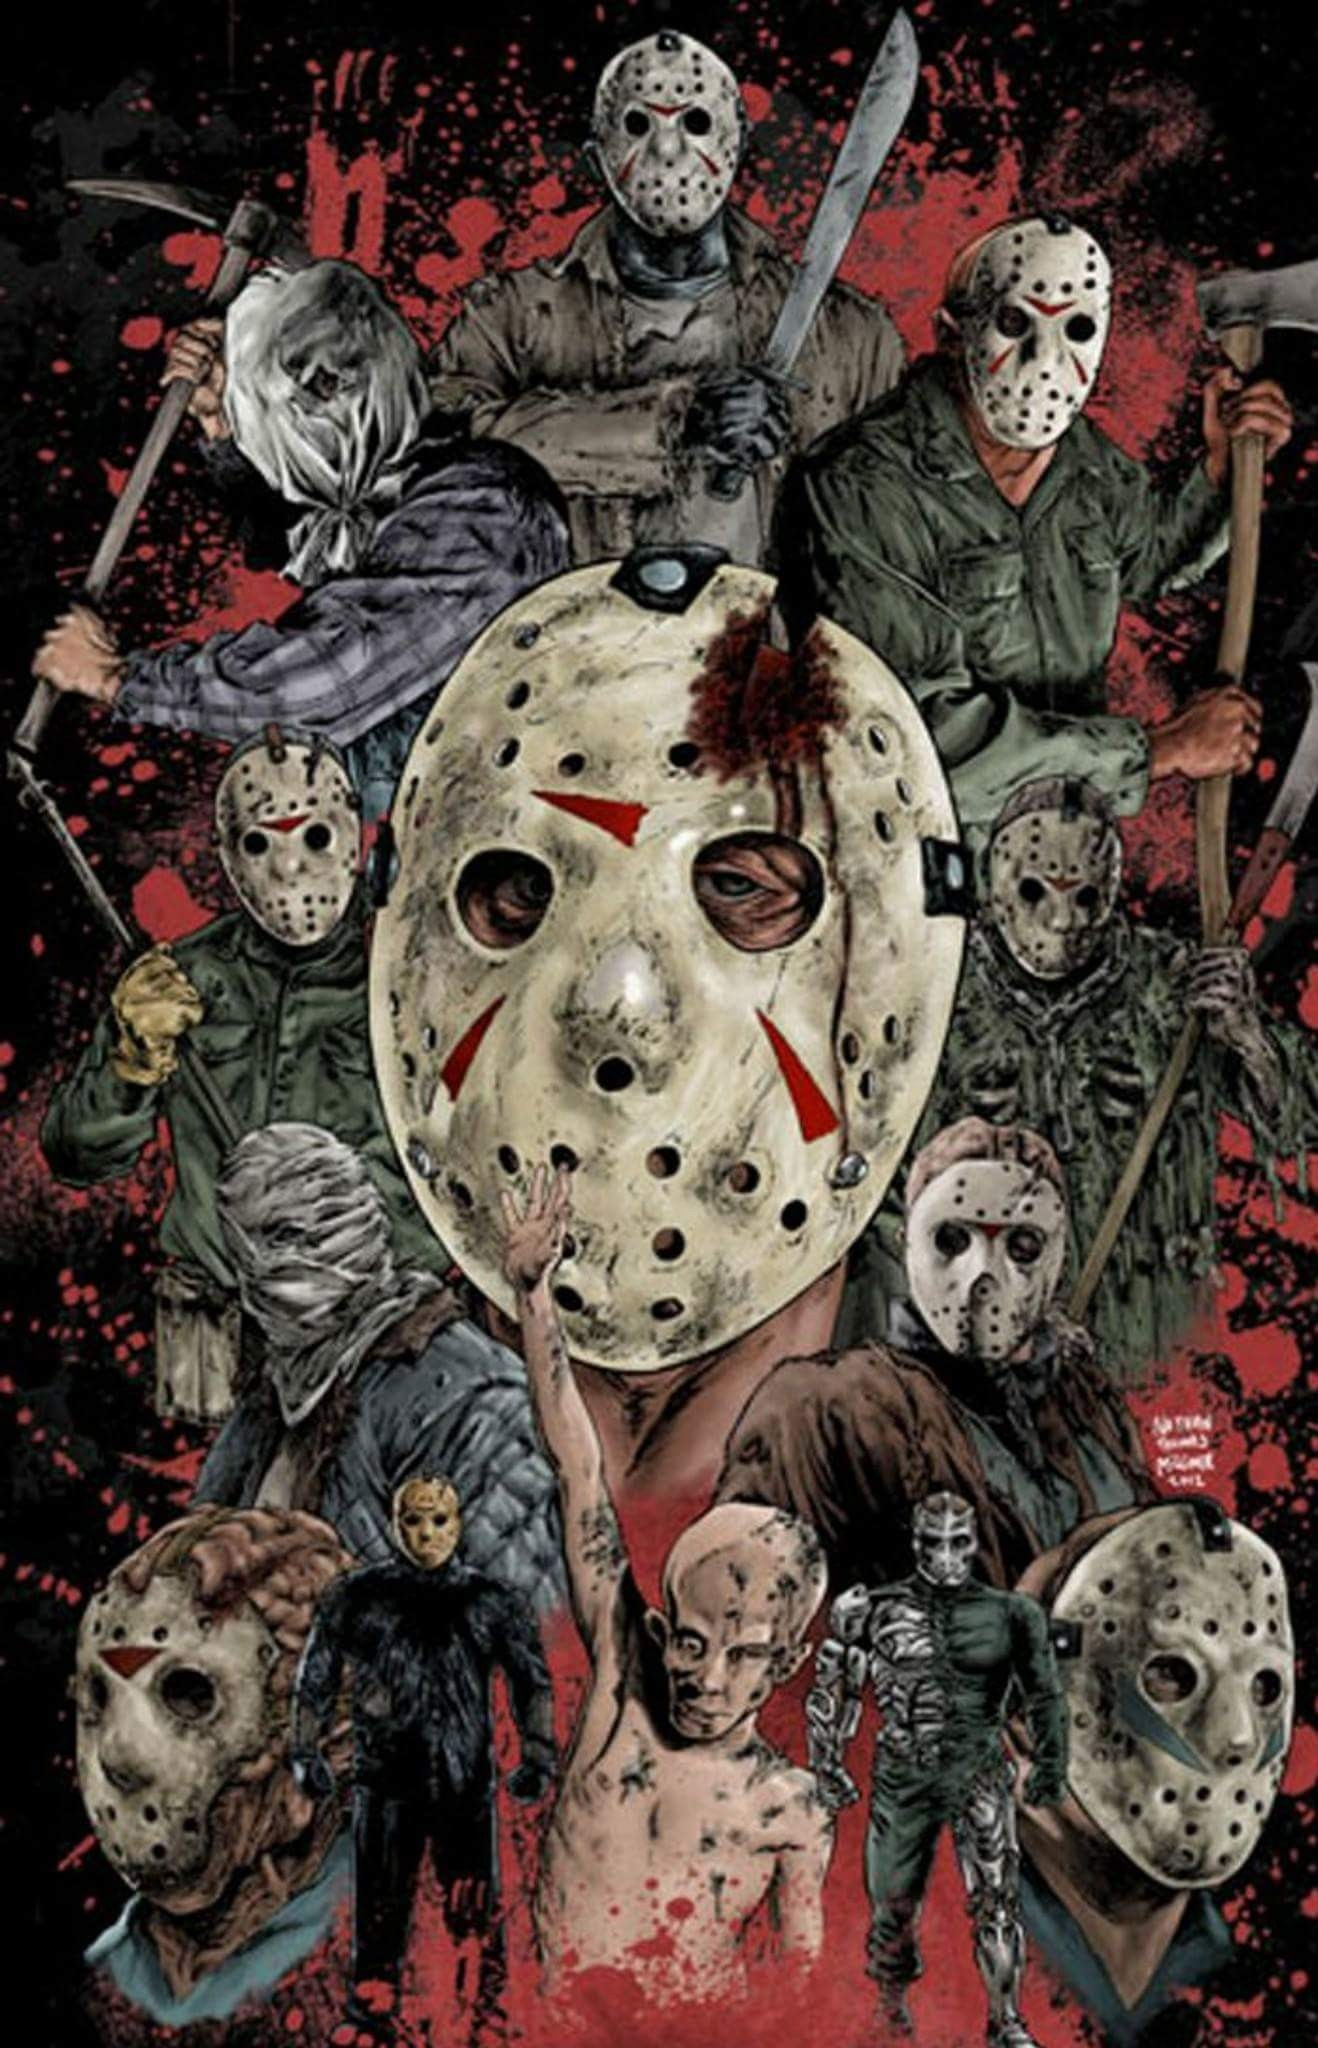 I love cheesy slasher movies. Here is a portrait of some of the most  beloved movie maniacs of all.